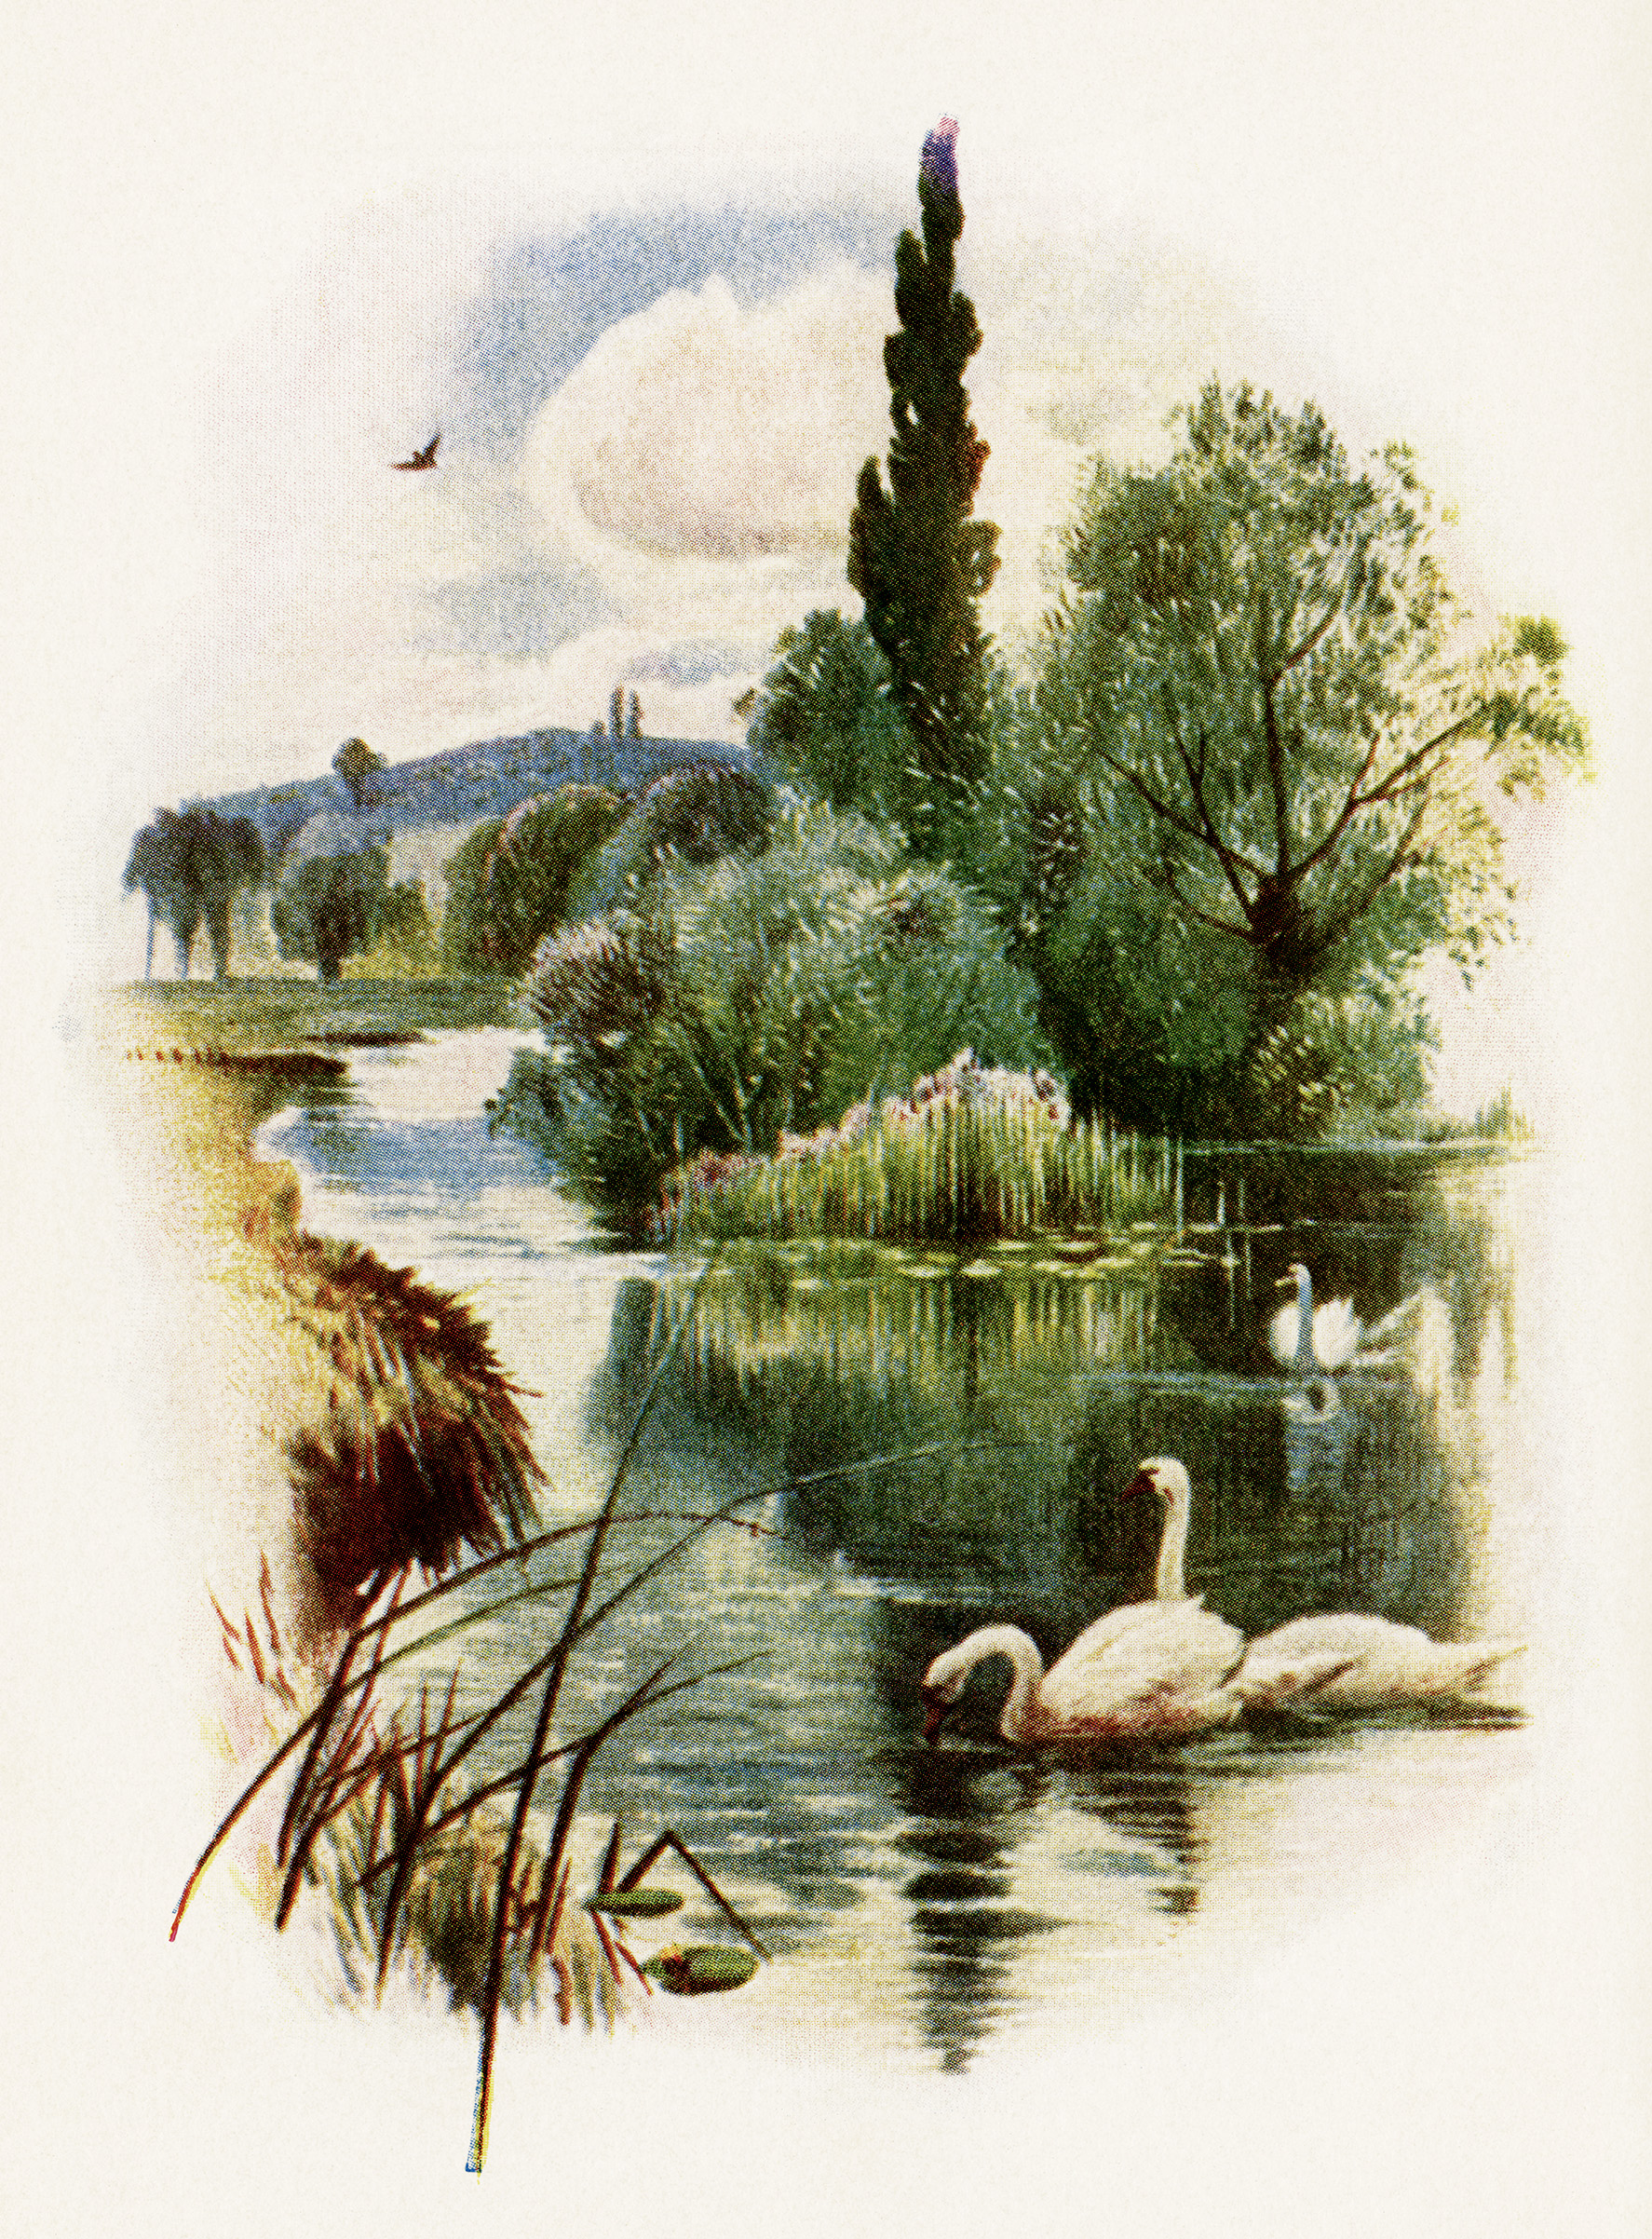 swans swimming illustration, free vintage clip art, swan on pond, nature outdoors scene, vintage swan image